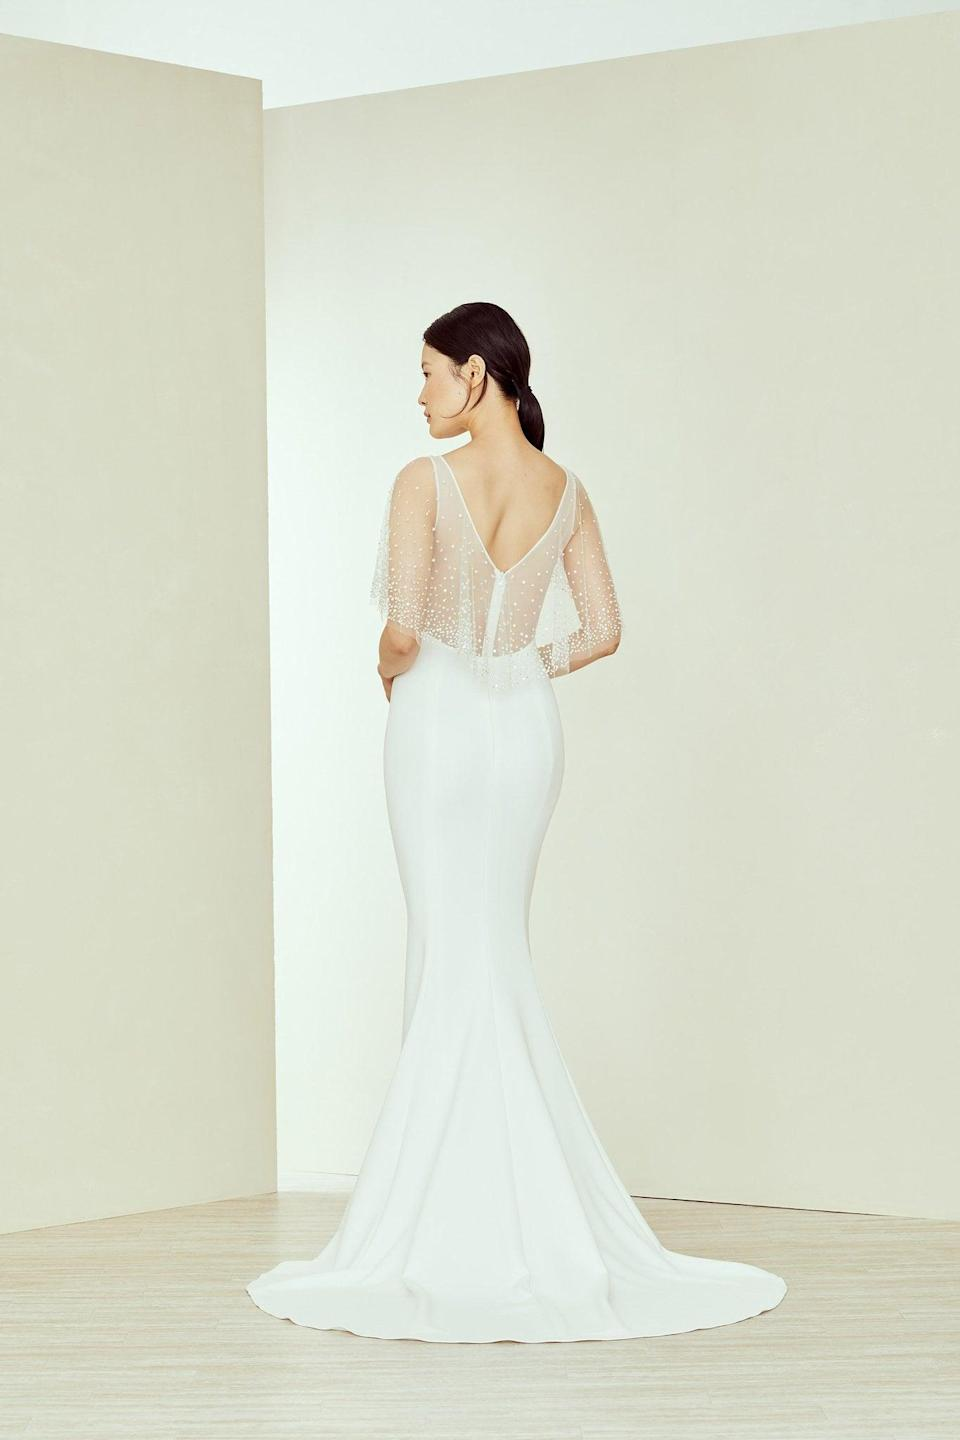 """<p>The sheer details on this <a href=""""https://www.popsugar.com/buy/Amsale-Jay-Gown-582310?p_name=Amsale%20Jay%20Gown&retailer=amsale.com&pid=582310&price=4%2C395&evar1=fab%3Aus&evar9=47551973&evar98=https%3A%2F%2Fwww.popsugar.com%2Fphoto-gallery%2F47551973%2Fimage%2F47552363%2FAmsale-Jay-Gown&list1=shopping%2Cwedding%2Cbride%2Cwedding%20dresses%2Cfashion%20shopping%2Cbest%20of%202020&prop13=api&pdata=1"""" class=""""link rapid-noclick-resp"""" rel=""""nofollow noopener"""" target=""""_blank"""" data-ylk=""""slk:Amsale Jay Gown"""">Amsale Jay Gown</a> ($4,395) are so ethereal.</p>"""